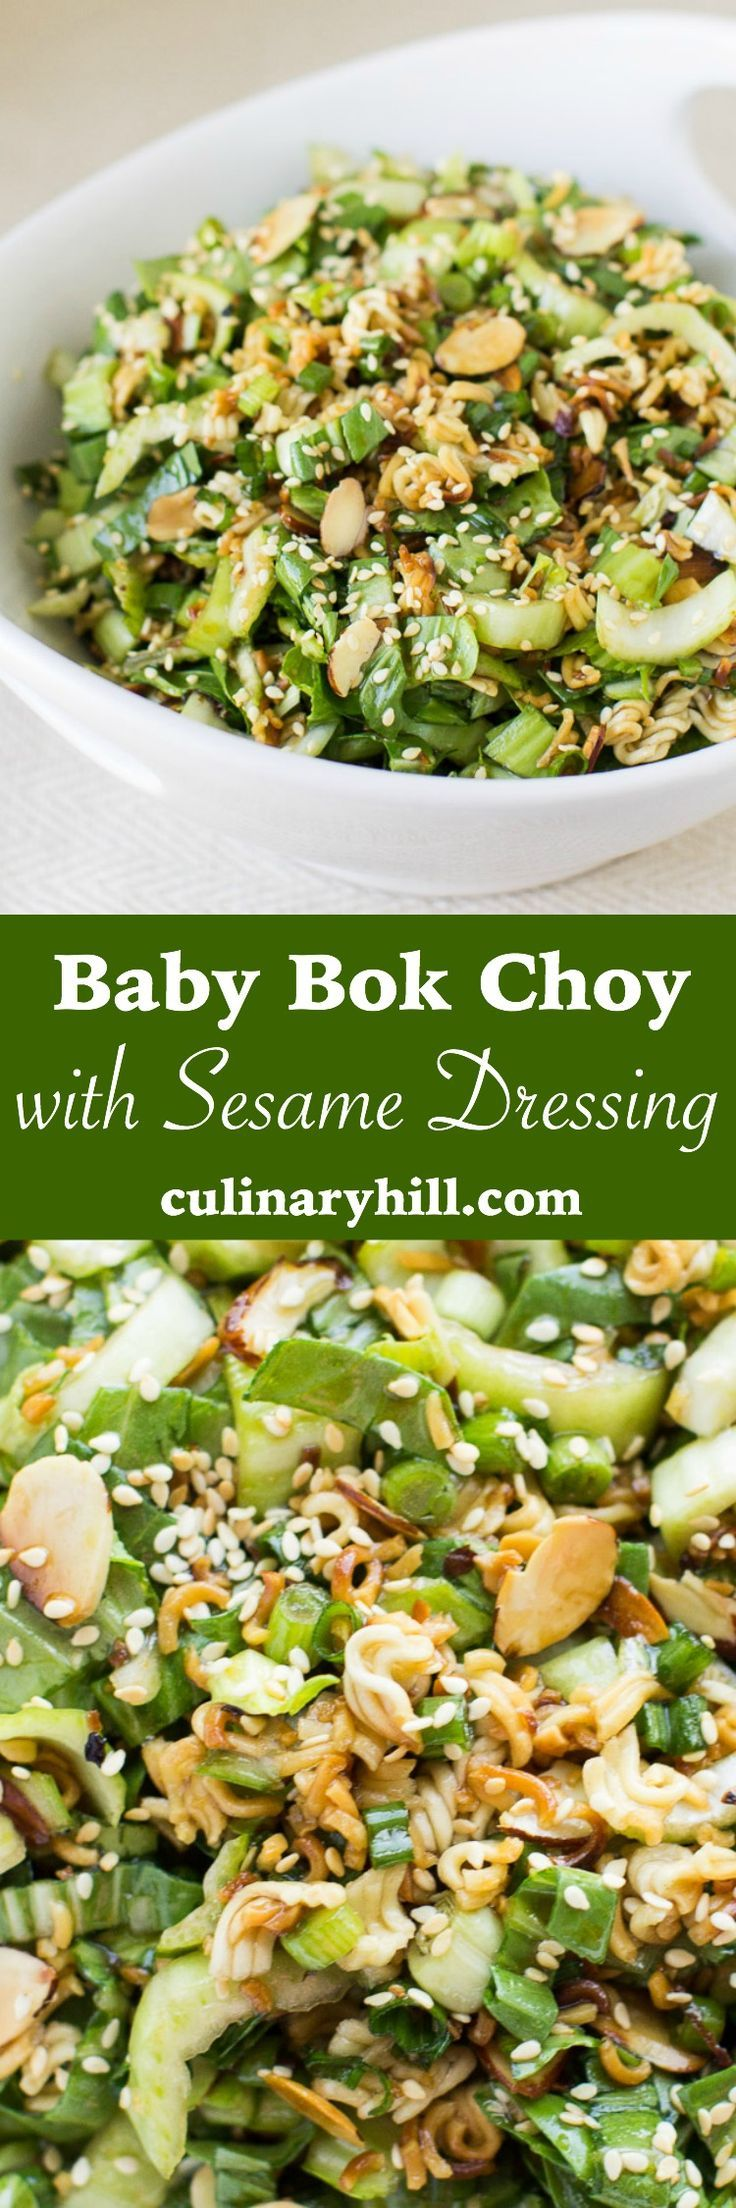 Baby Bok Choy with Sesame Dressing - Whether you're new to baby bok choy or an old fan, you'll love this crunchy salad!